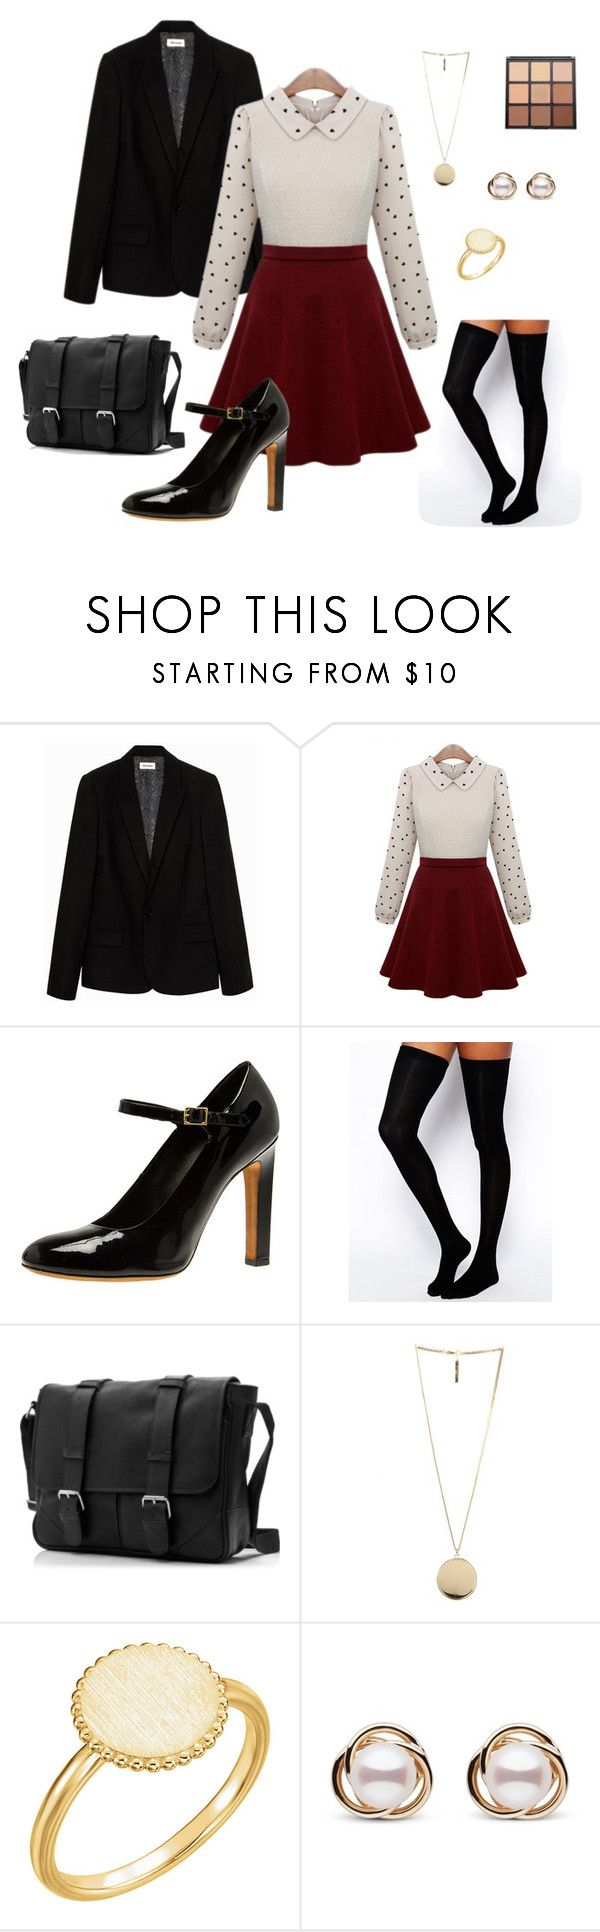 """Spencer Hastings Preppy"" by janeth-pq on Polyvore featuring Zadig & Voltaire, ASOS, Givenchy, Trilogy and Morphe"